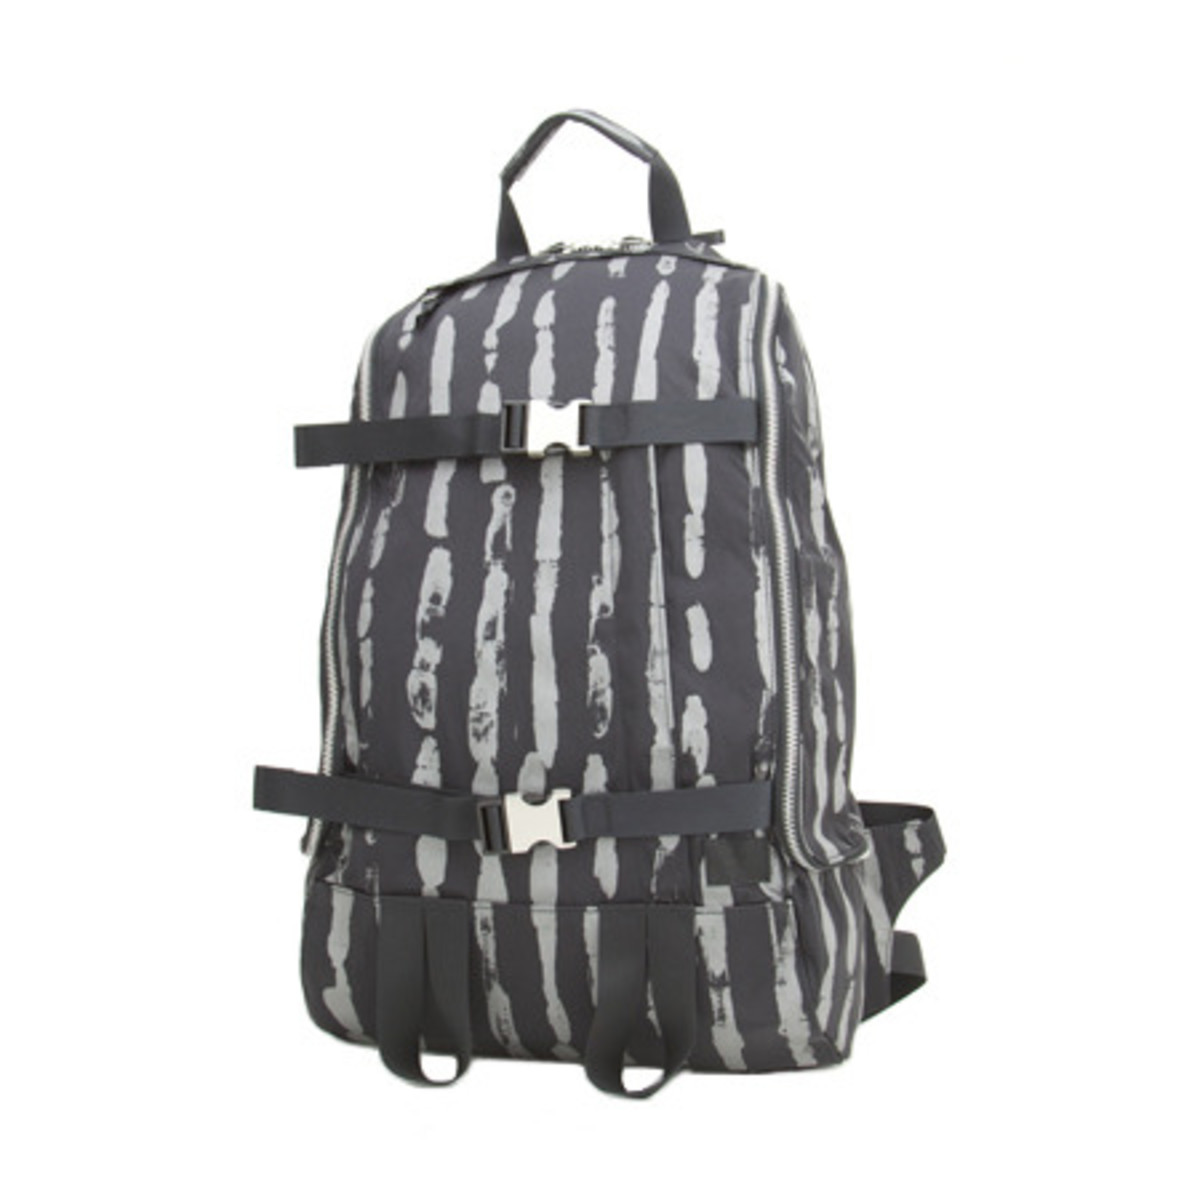 Blaak Backpack